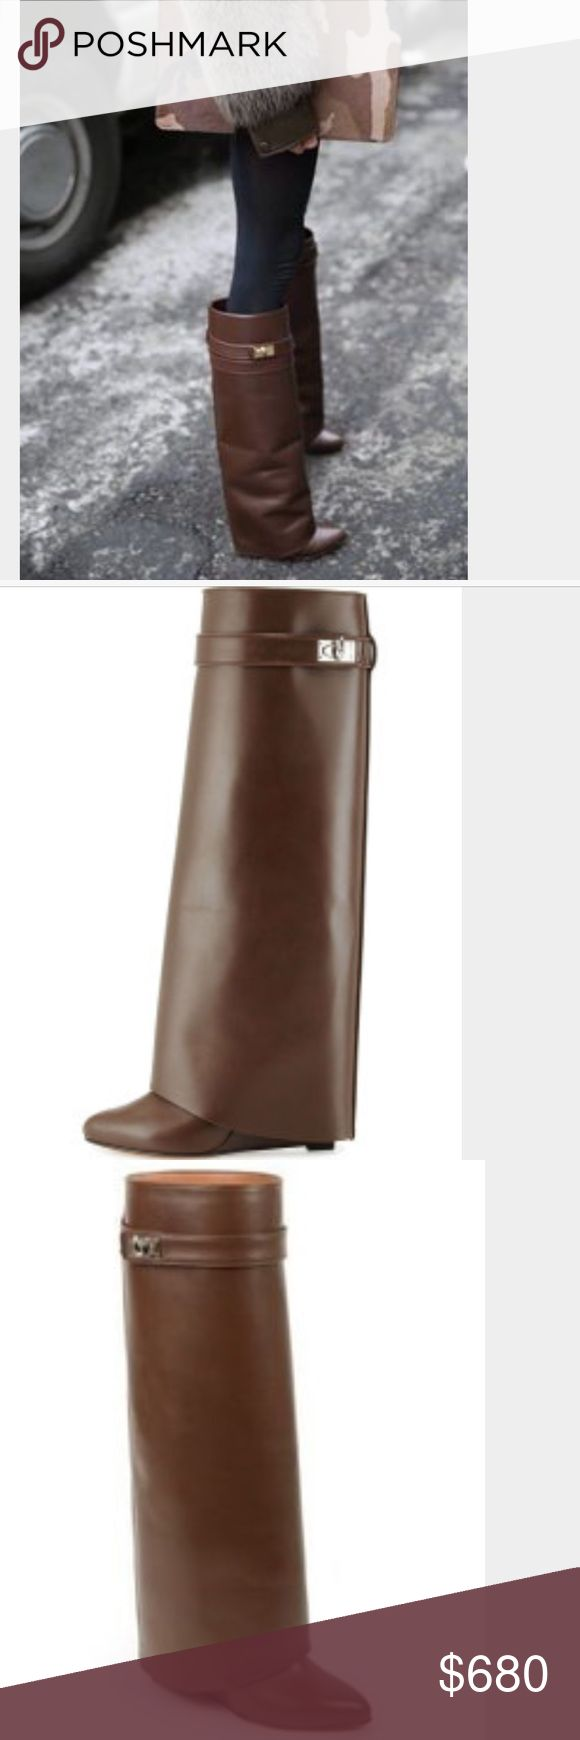 Givenchy Shark Lock Knee Boots Nwt Shoes Heels Boots